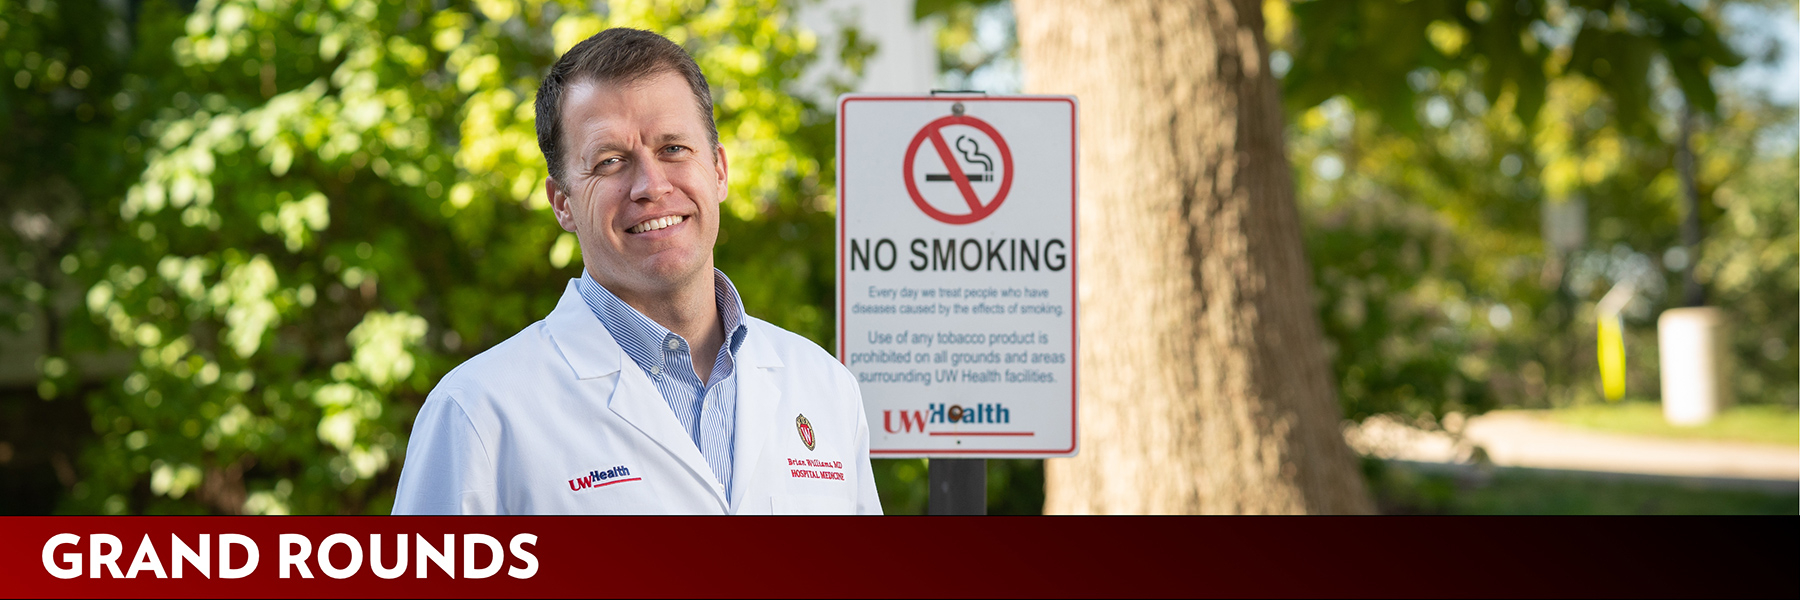 E-Cigarettes and Vaping: A Failed Social Experiment - Brian Williams, MD